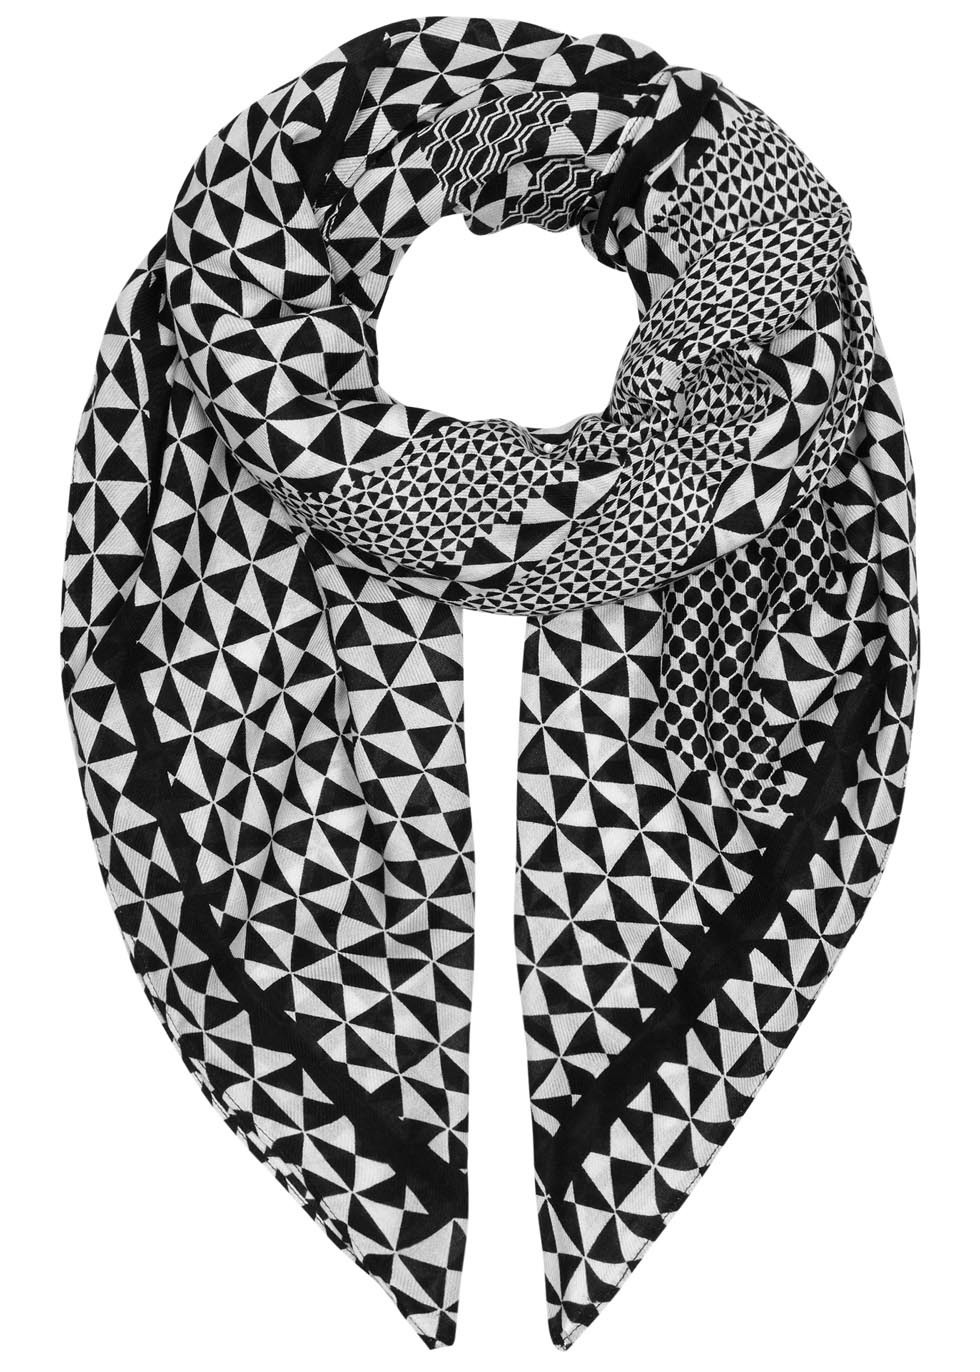 Monochrome Printed Modal Blend Scarf - secondary colour: white; predominant colour: black; occasions: casual, creative work; type of pattern: light; style: square; size: standard; material: fabric; trends: monochrome; pattern: patterned/print; season: a/w 2015; wardrobe: highlight